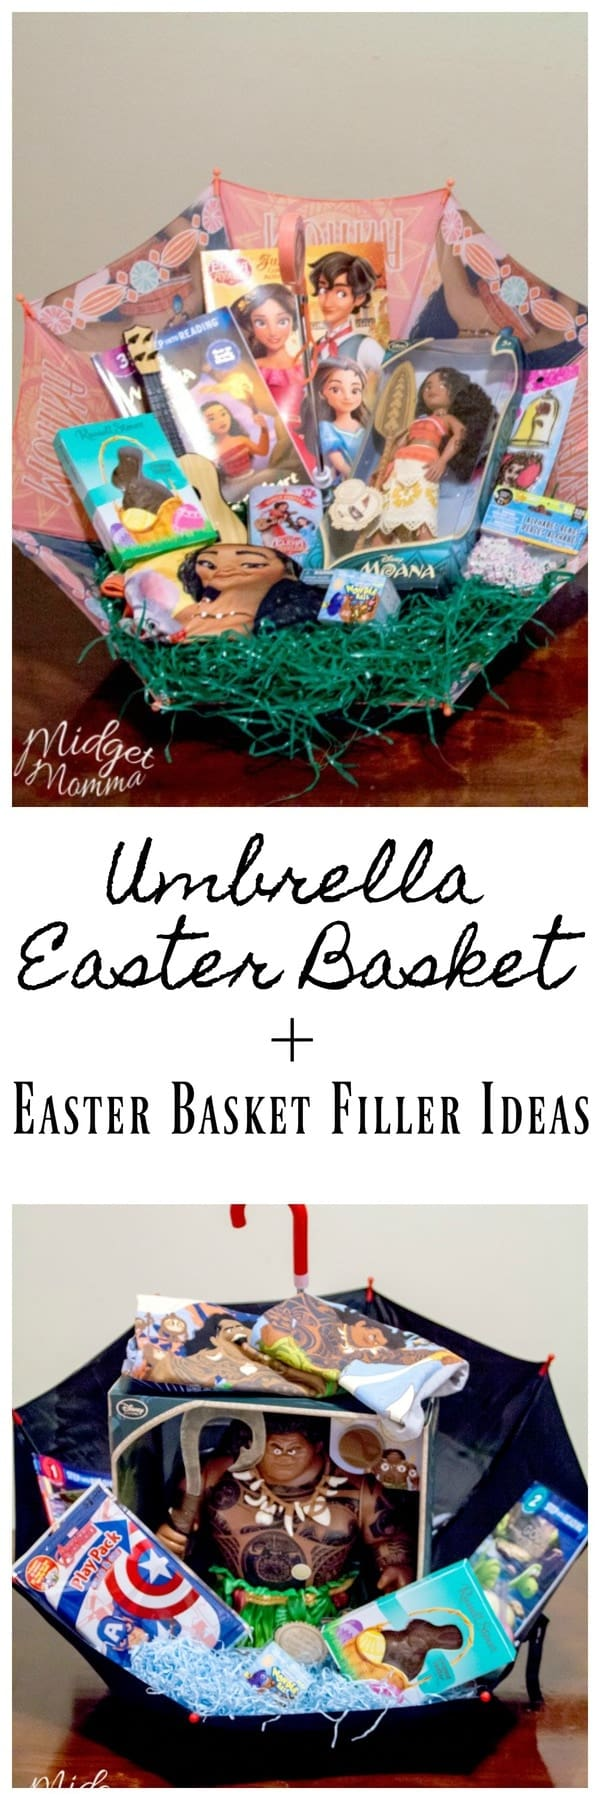 Umbrella Easter Basket Amp Easter Basket Ideas For Kids